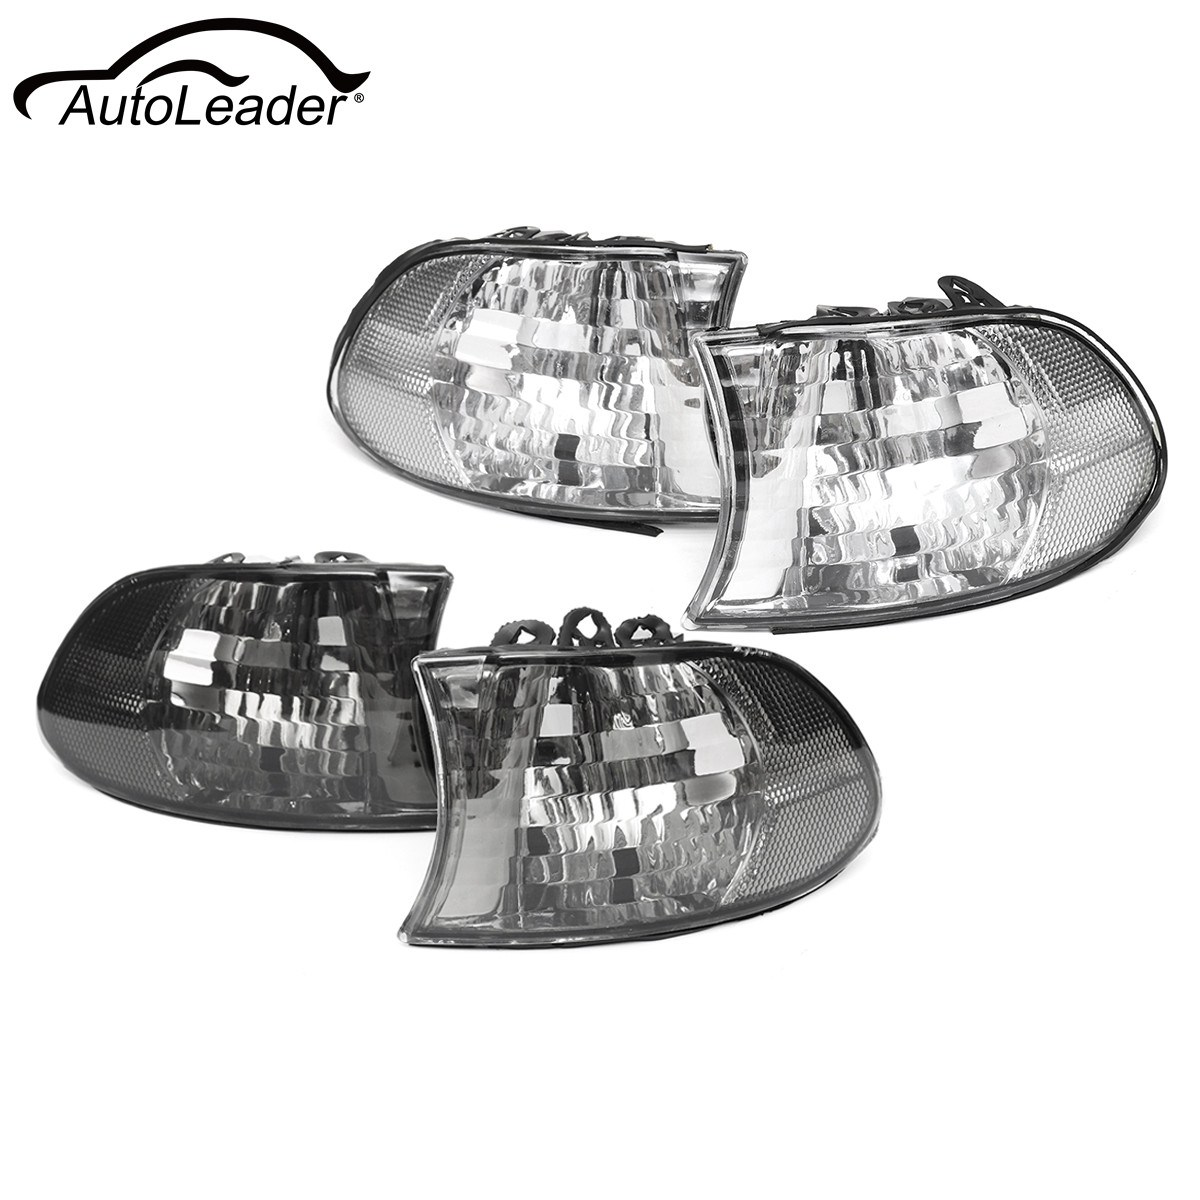 Pair Car Corner Light Left+Right Side Lamps For BMW 7 Series E38 1999 2000 2001 Clear Smoked 2pcs right left fog light lamp for b mw e39 5 series 528i 540i 535i 1997 2000 e36 z3 2001 63178360575 63178360576